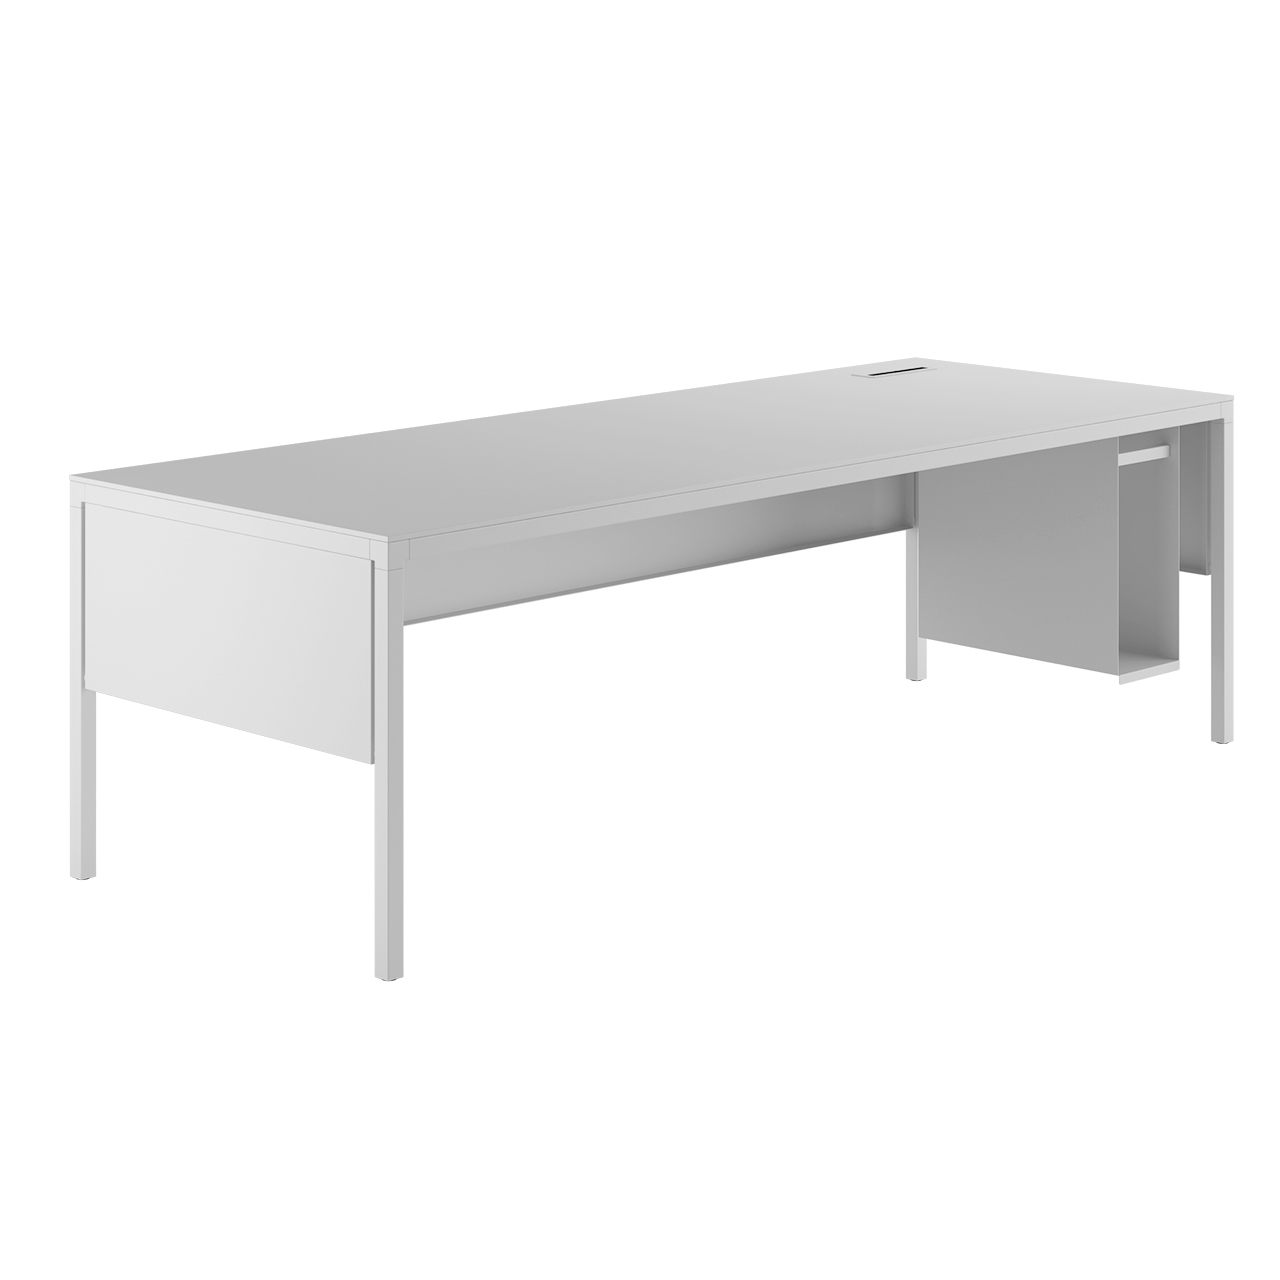 Helsinki Office 35 Desk System by Desalto